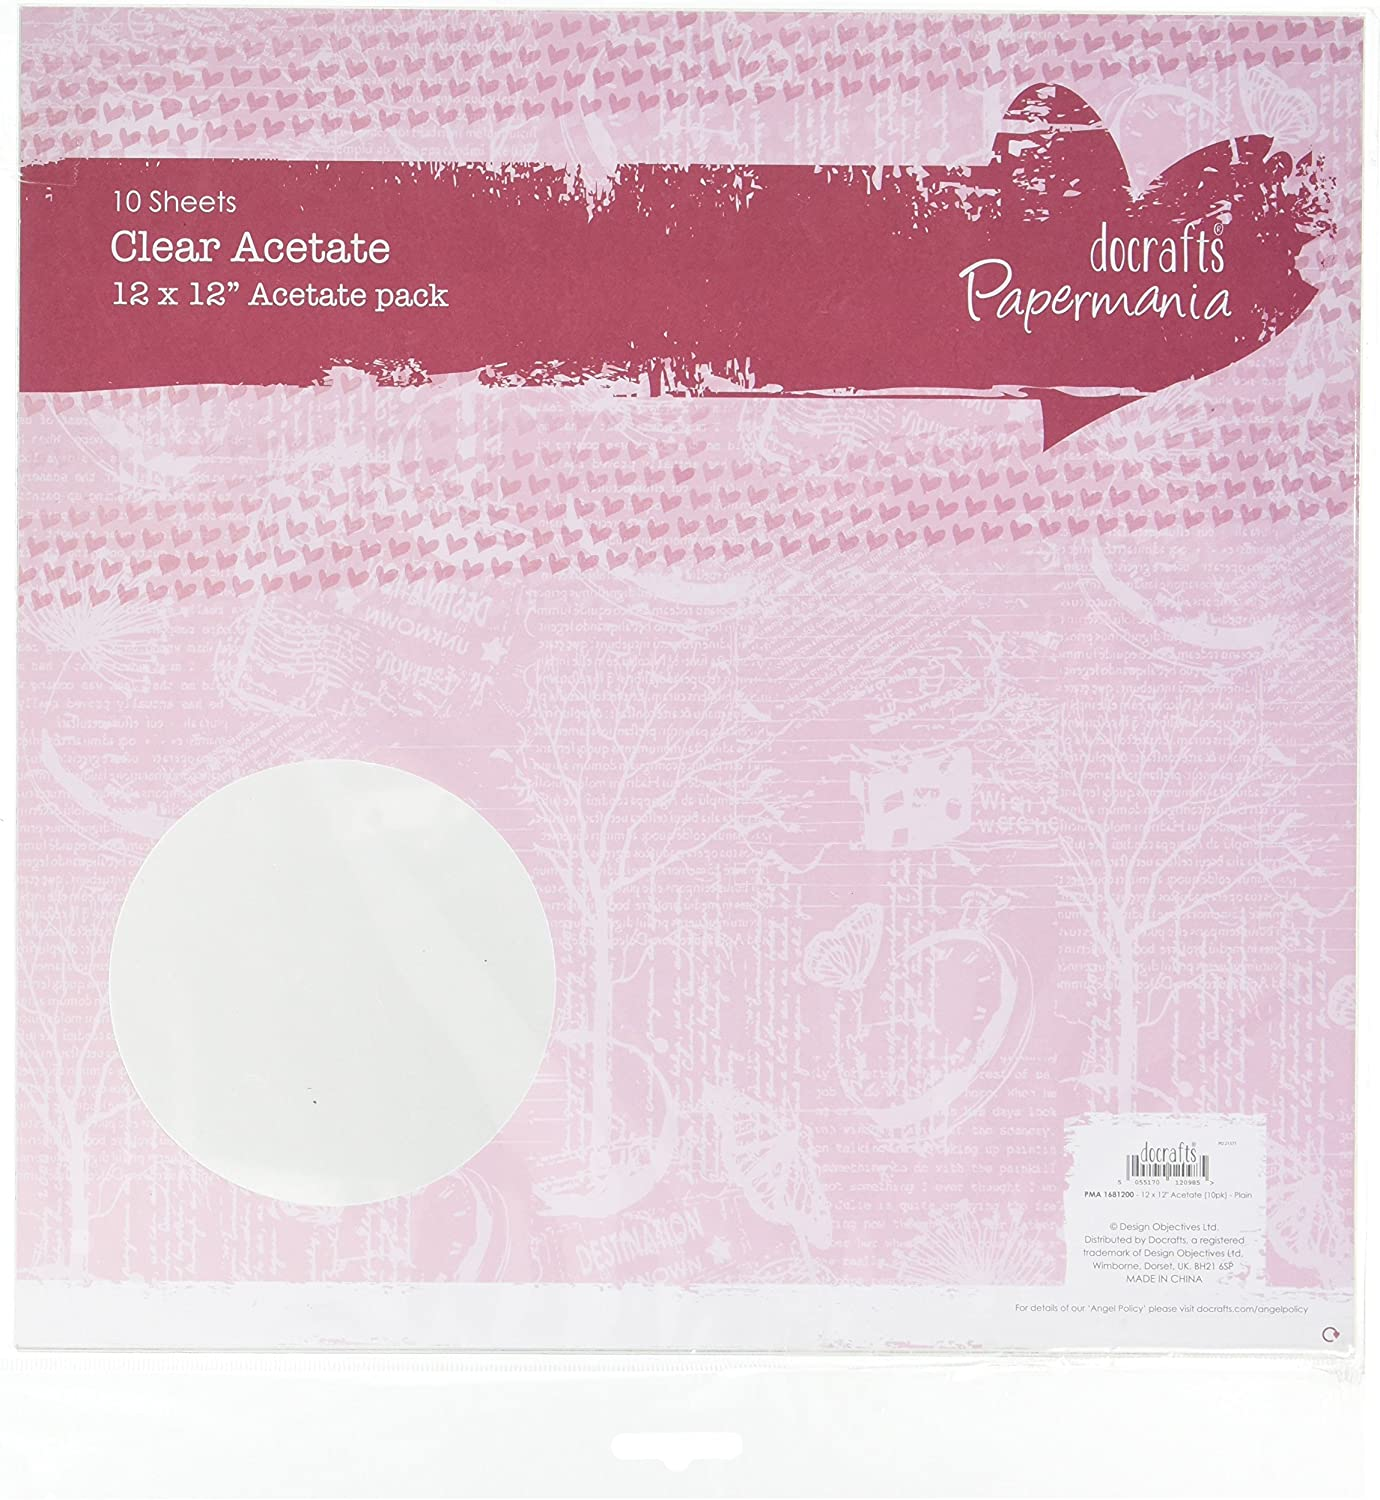 Papermania 12 X 12 Inch Plain Acetate Sheet Pack Of 10 Amazon Ca Home Kitchen